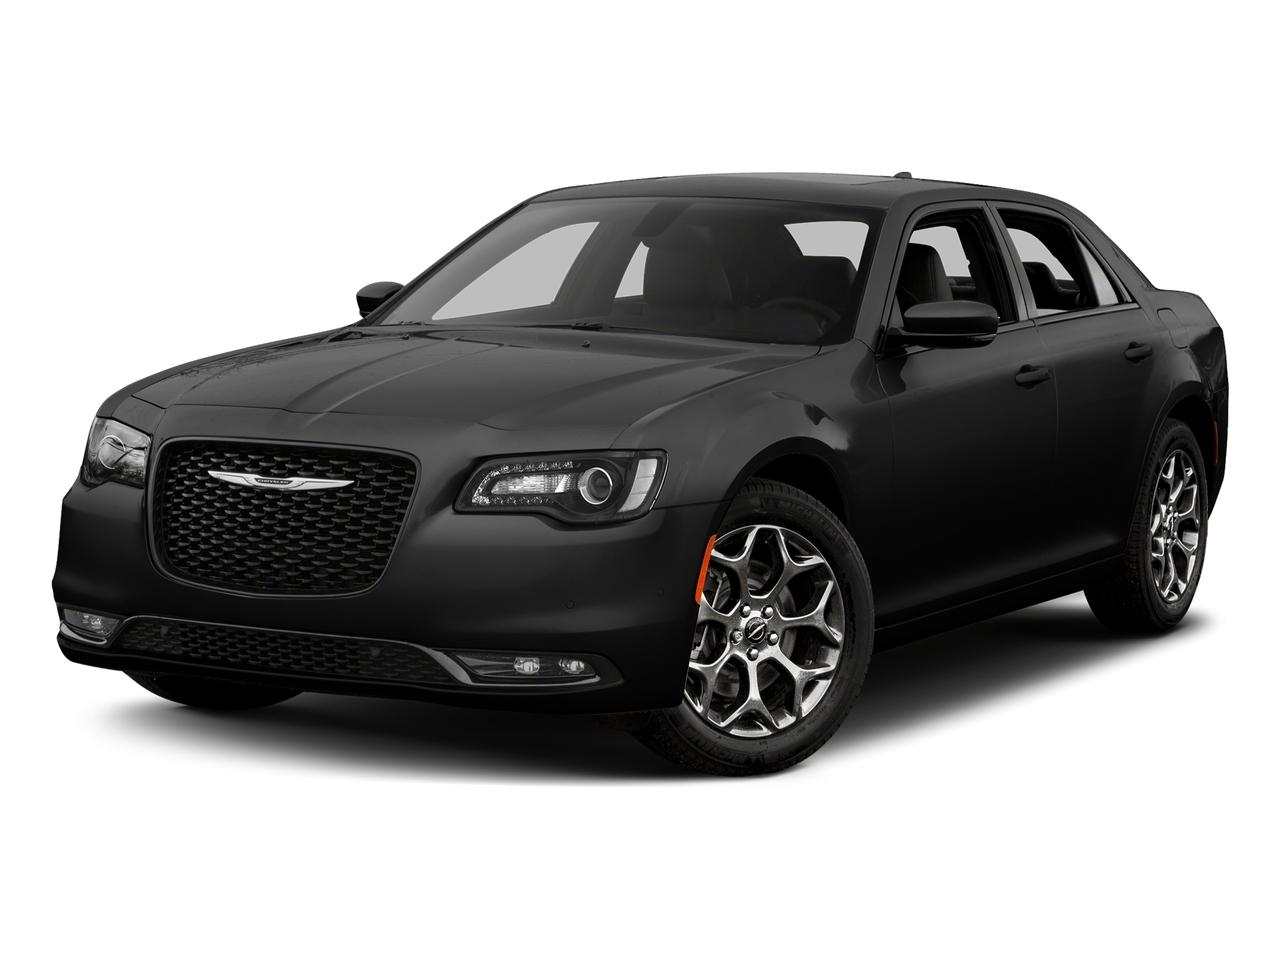 2017 Chrysler 300 Vehicle Photo in Medina, OH 44256